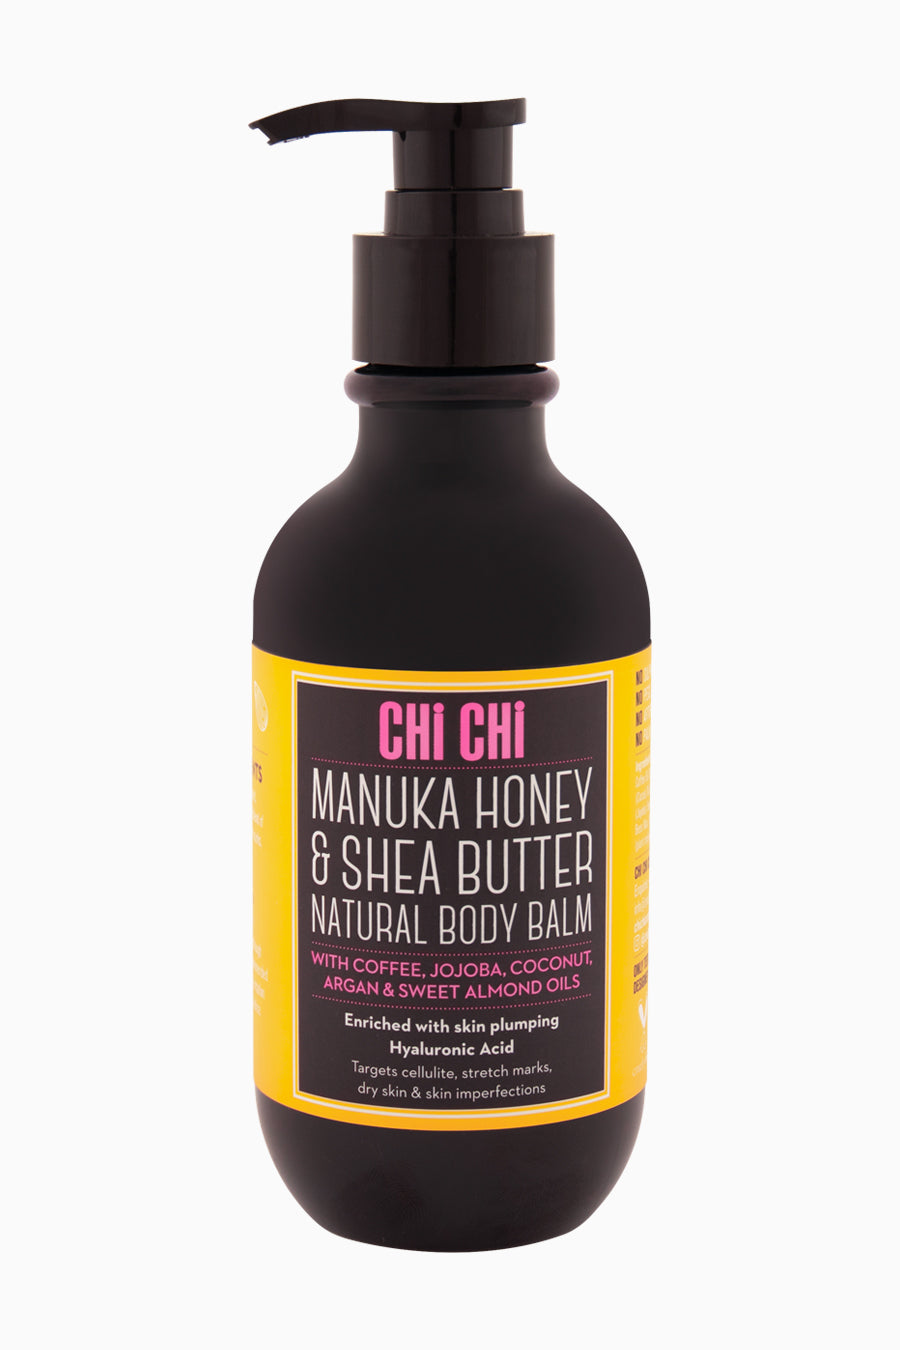 Manuka Honey and Shea Butter Natural Body Balm